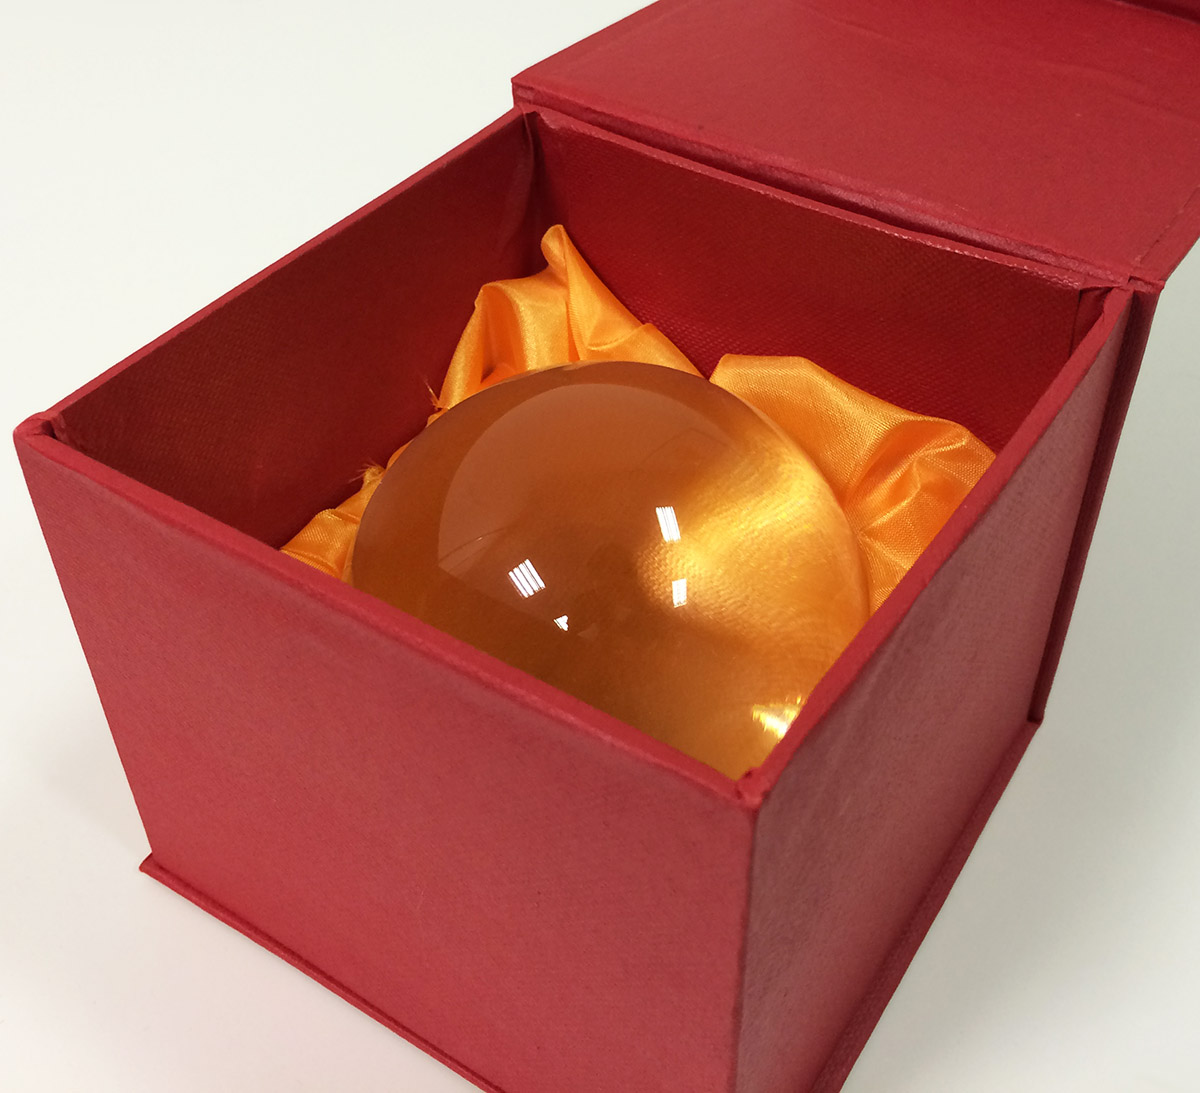 transparent glass sphere with gift box